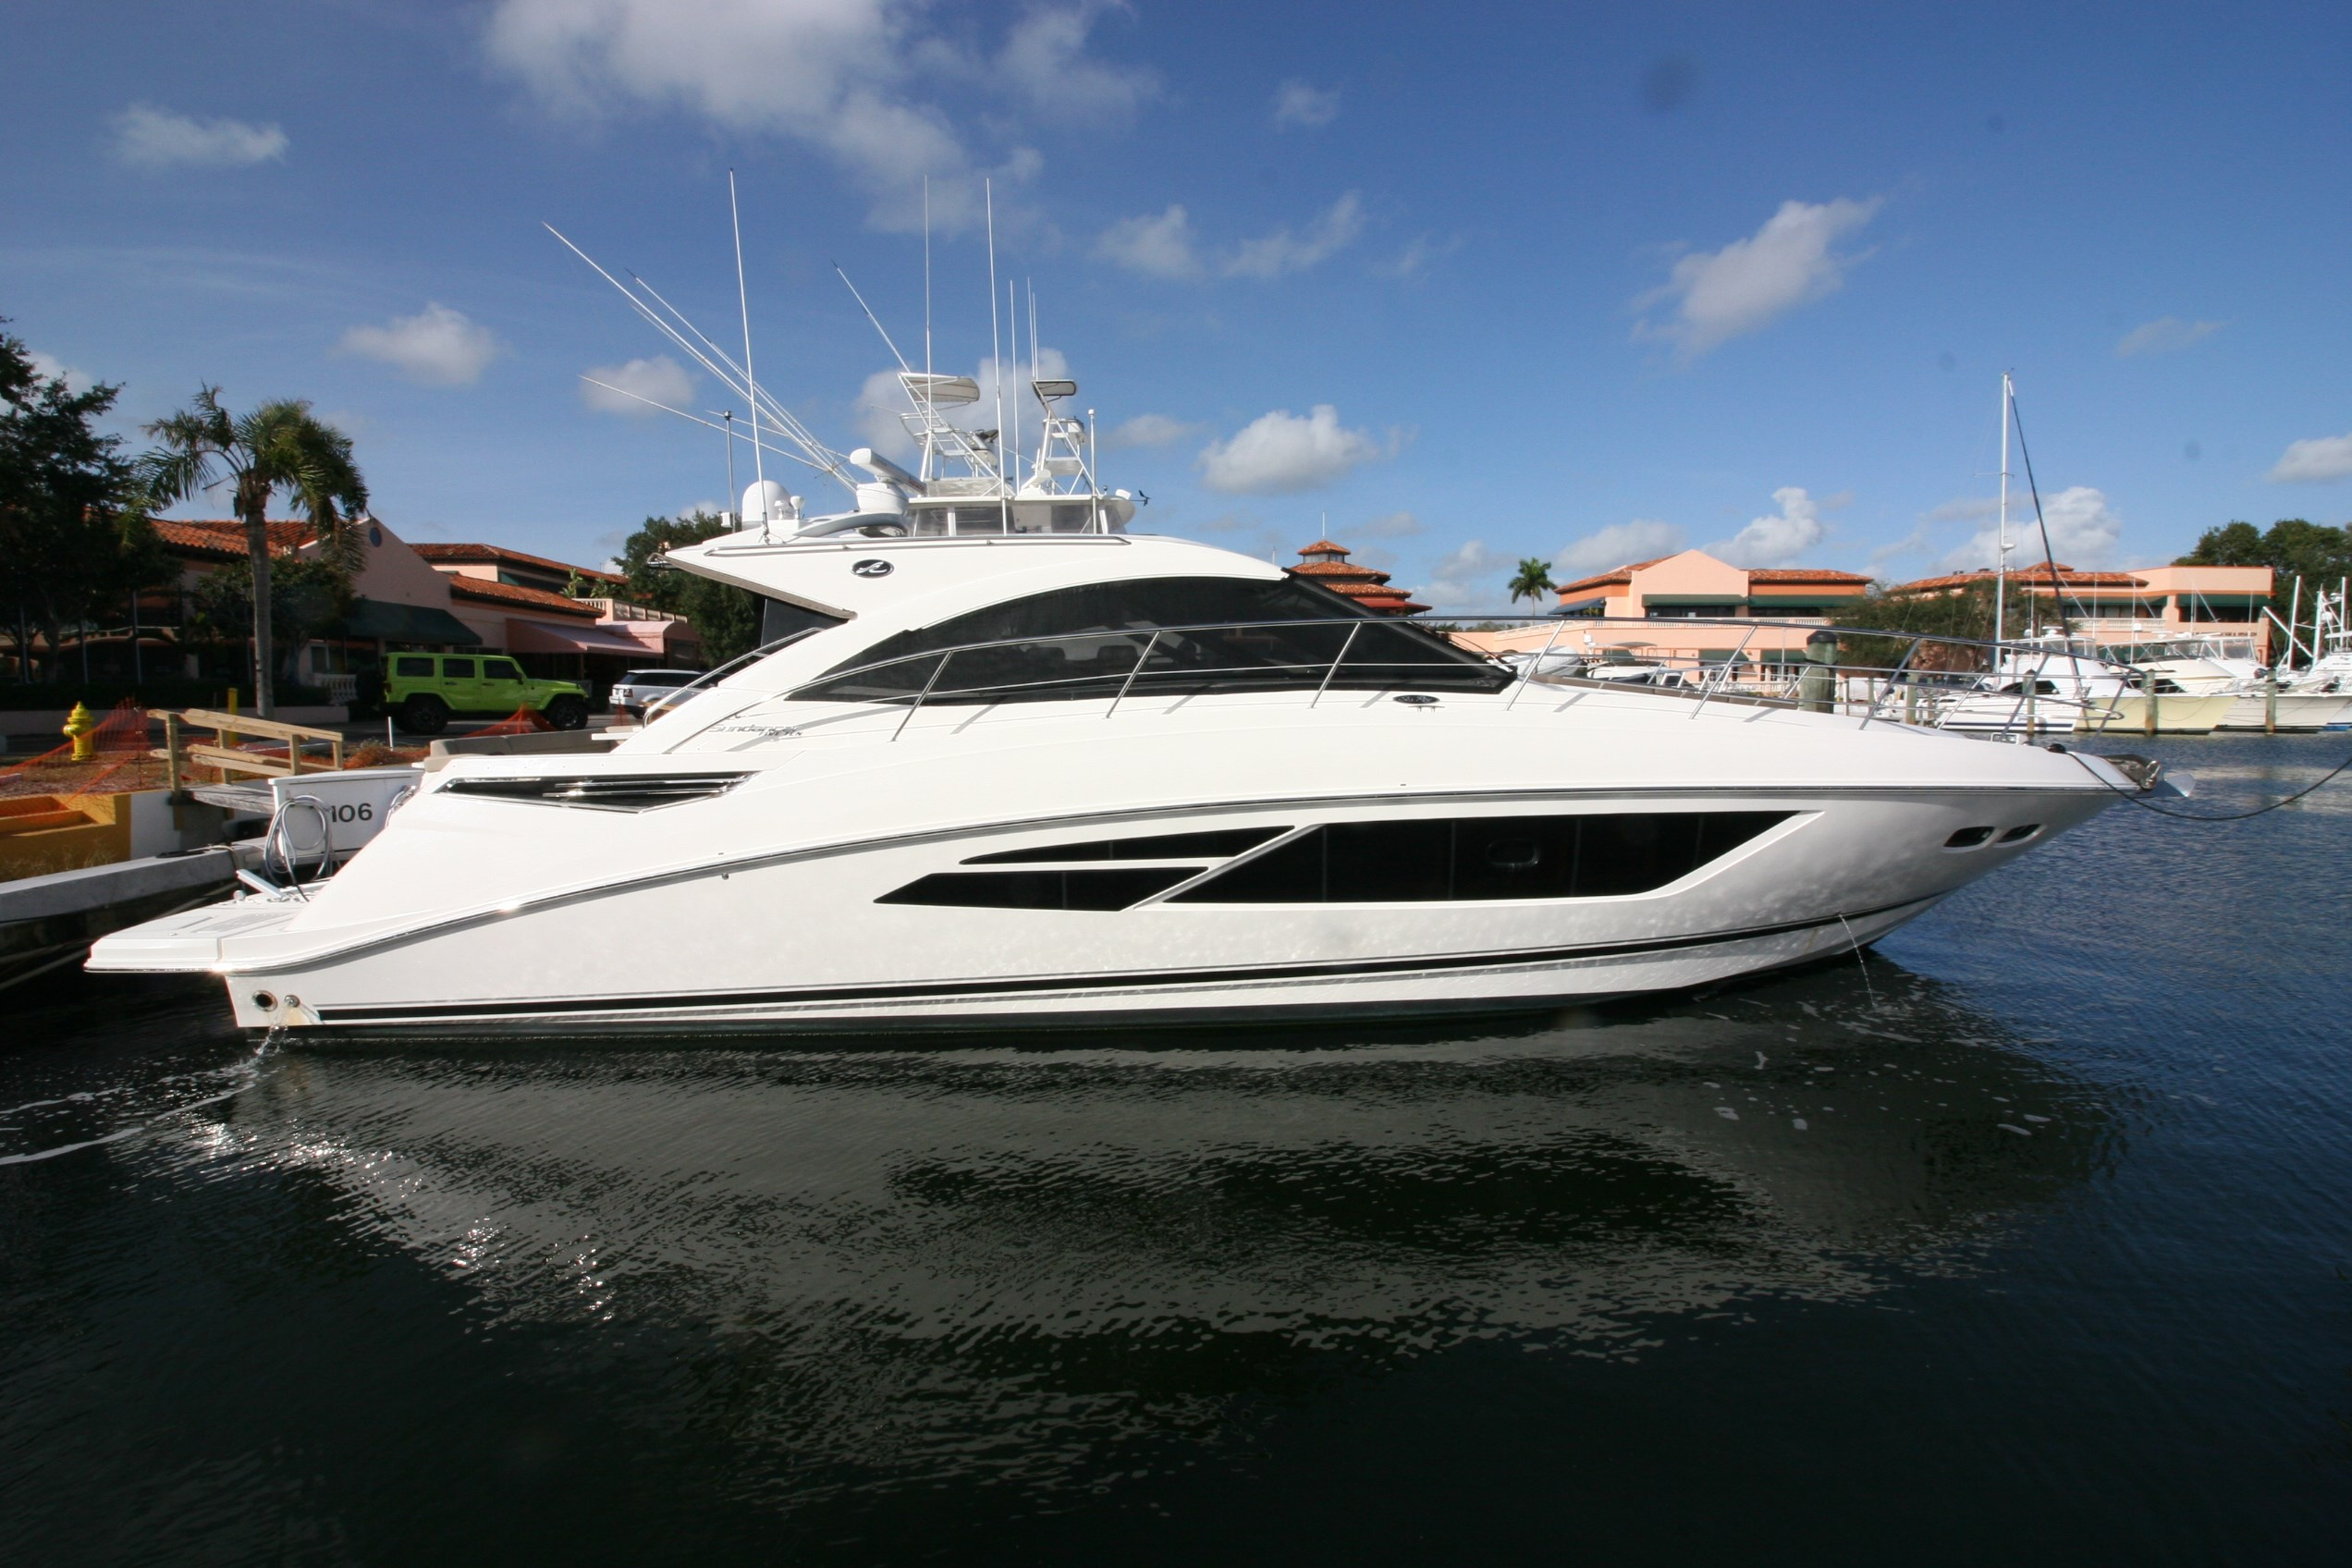 2016 sea ray 510 sundancer boat for sale 2016 sea ray for Boat motors for sale in florida